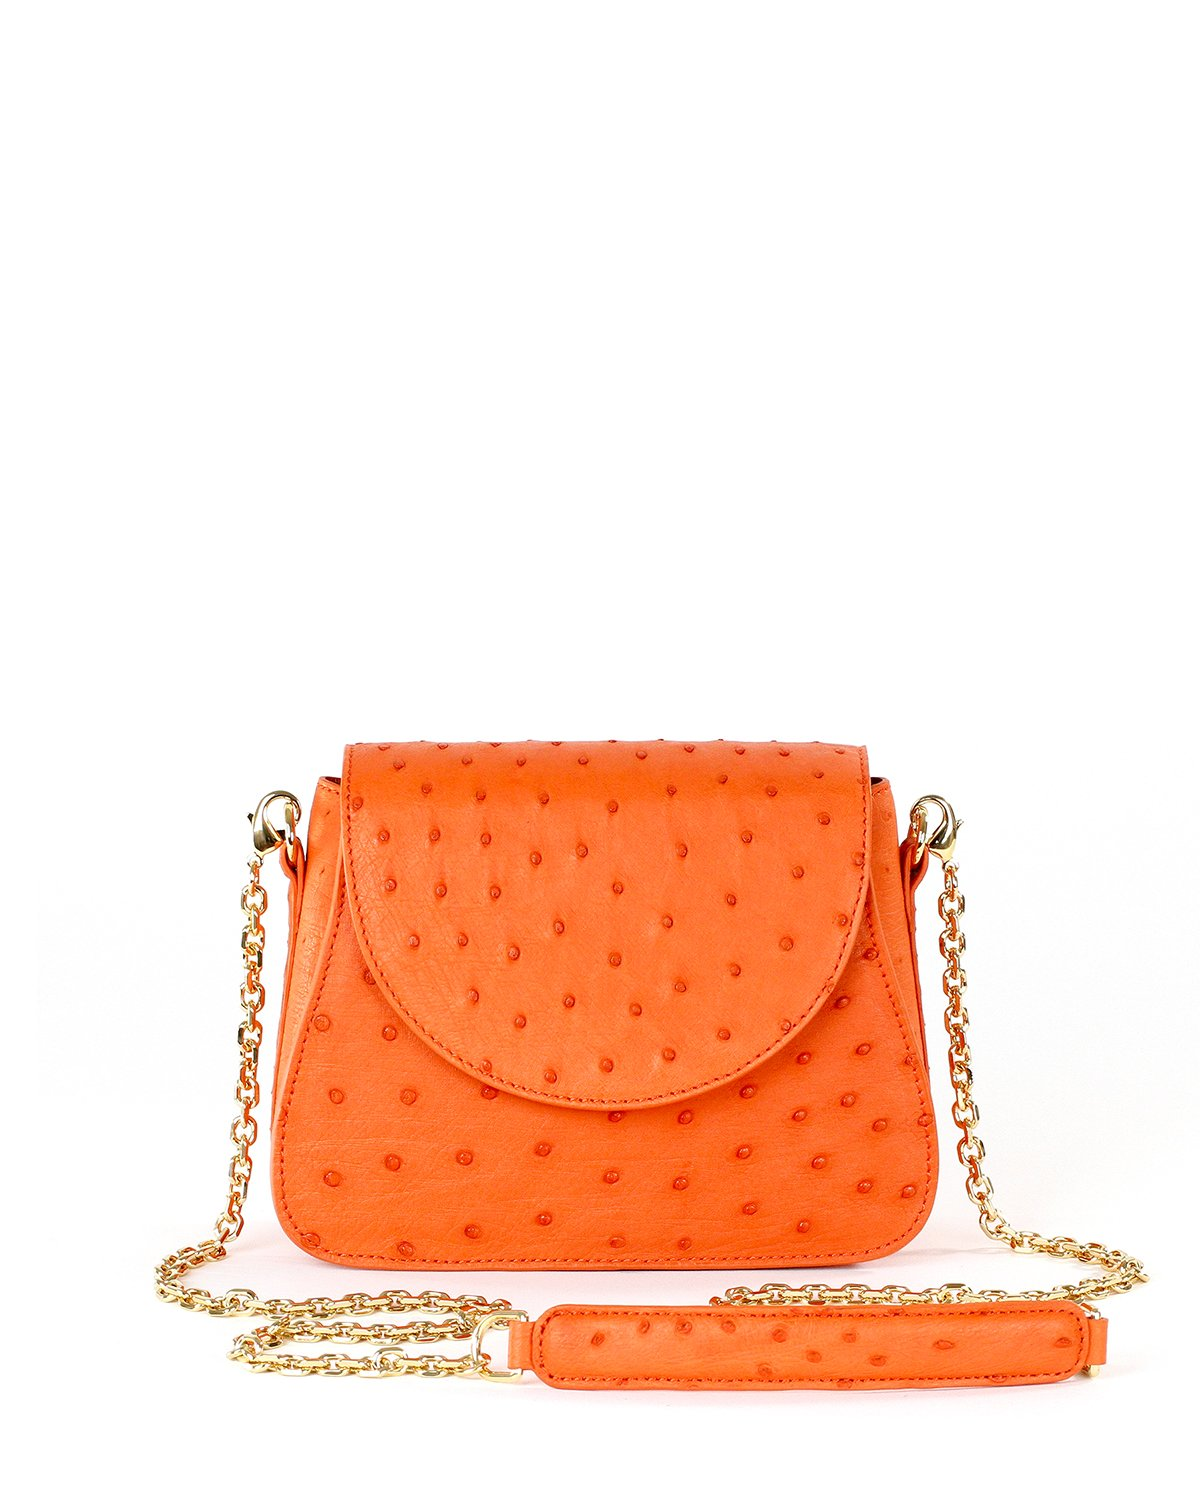 True Orange Ostrich Genuine Sustainable Crossbody Handbag Yara Bashoor Front Image Gold Long Chain Padded Shoulder Piece